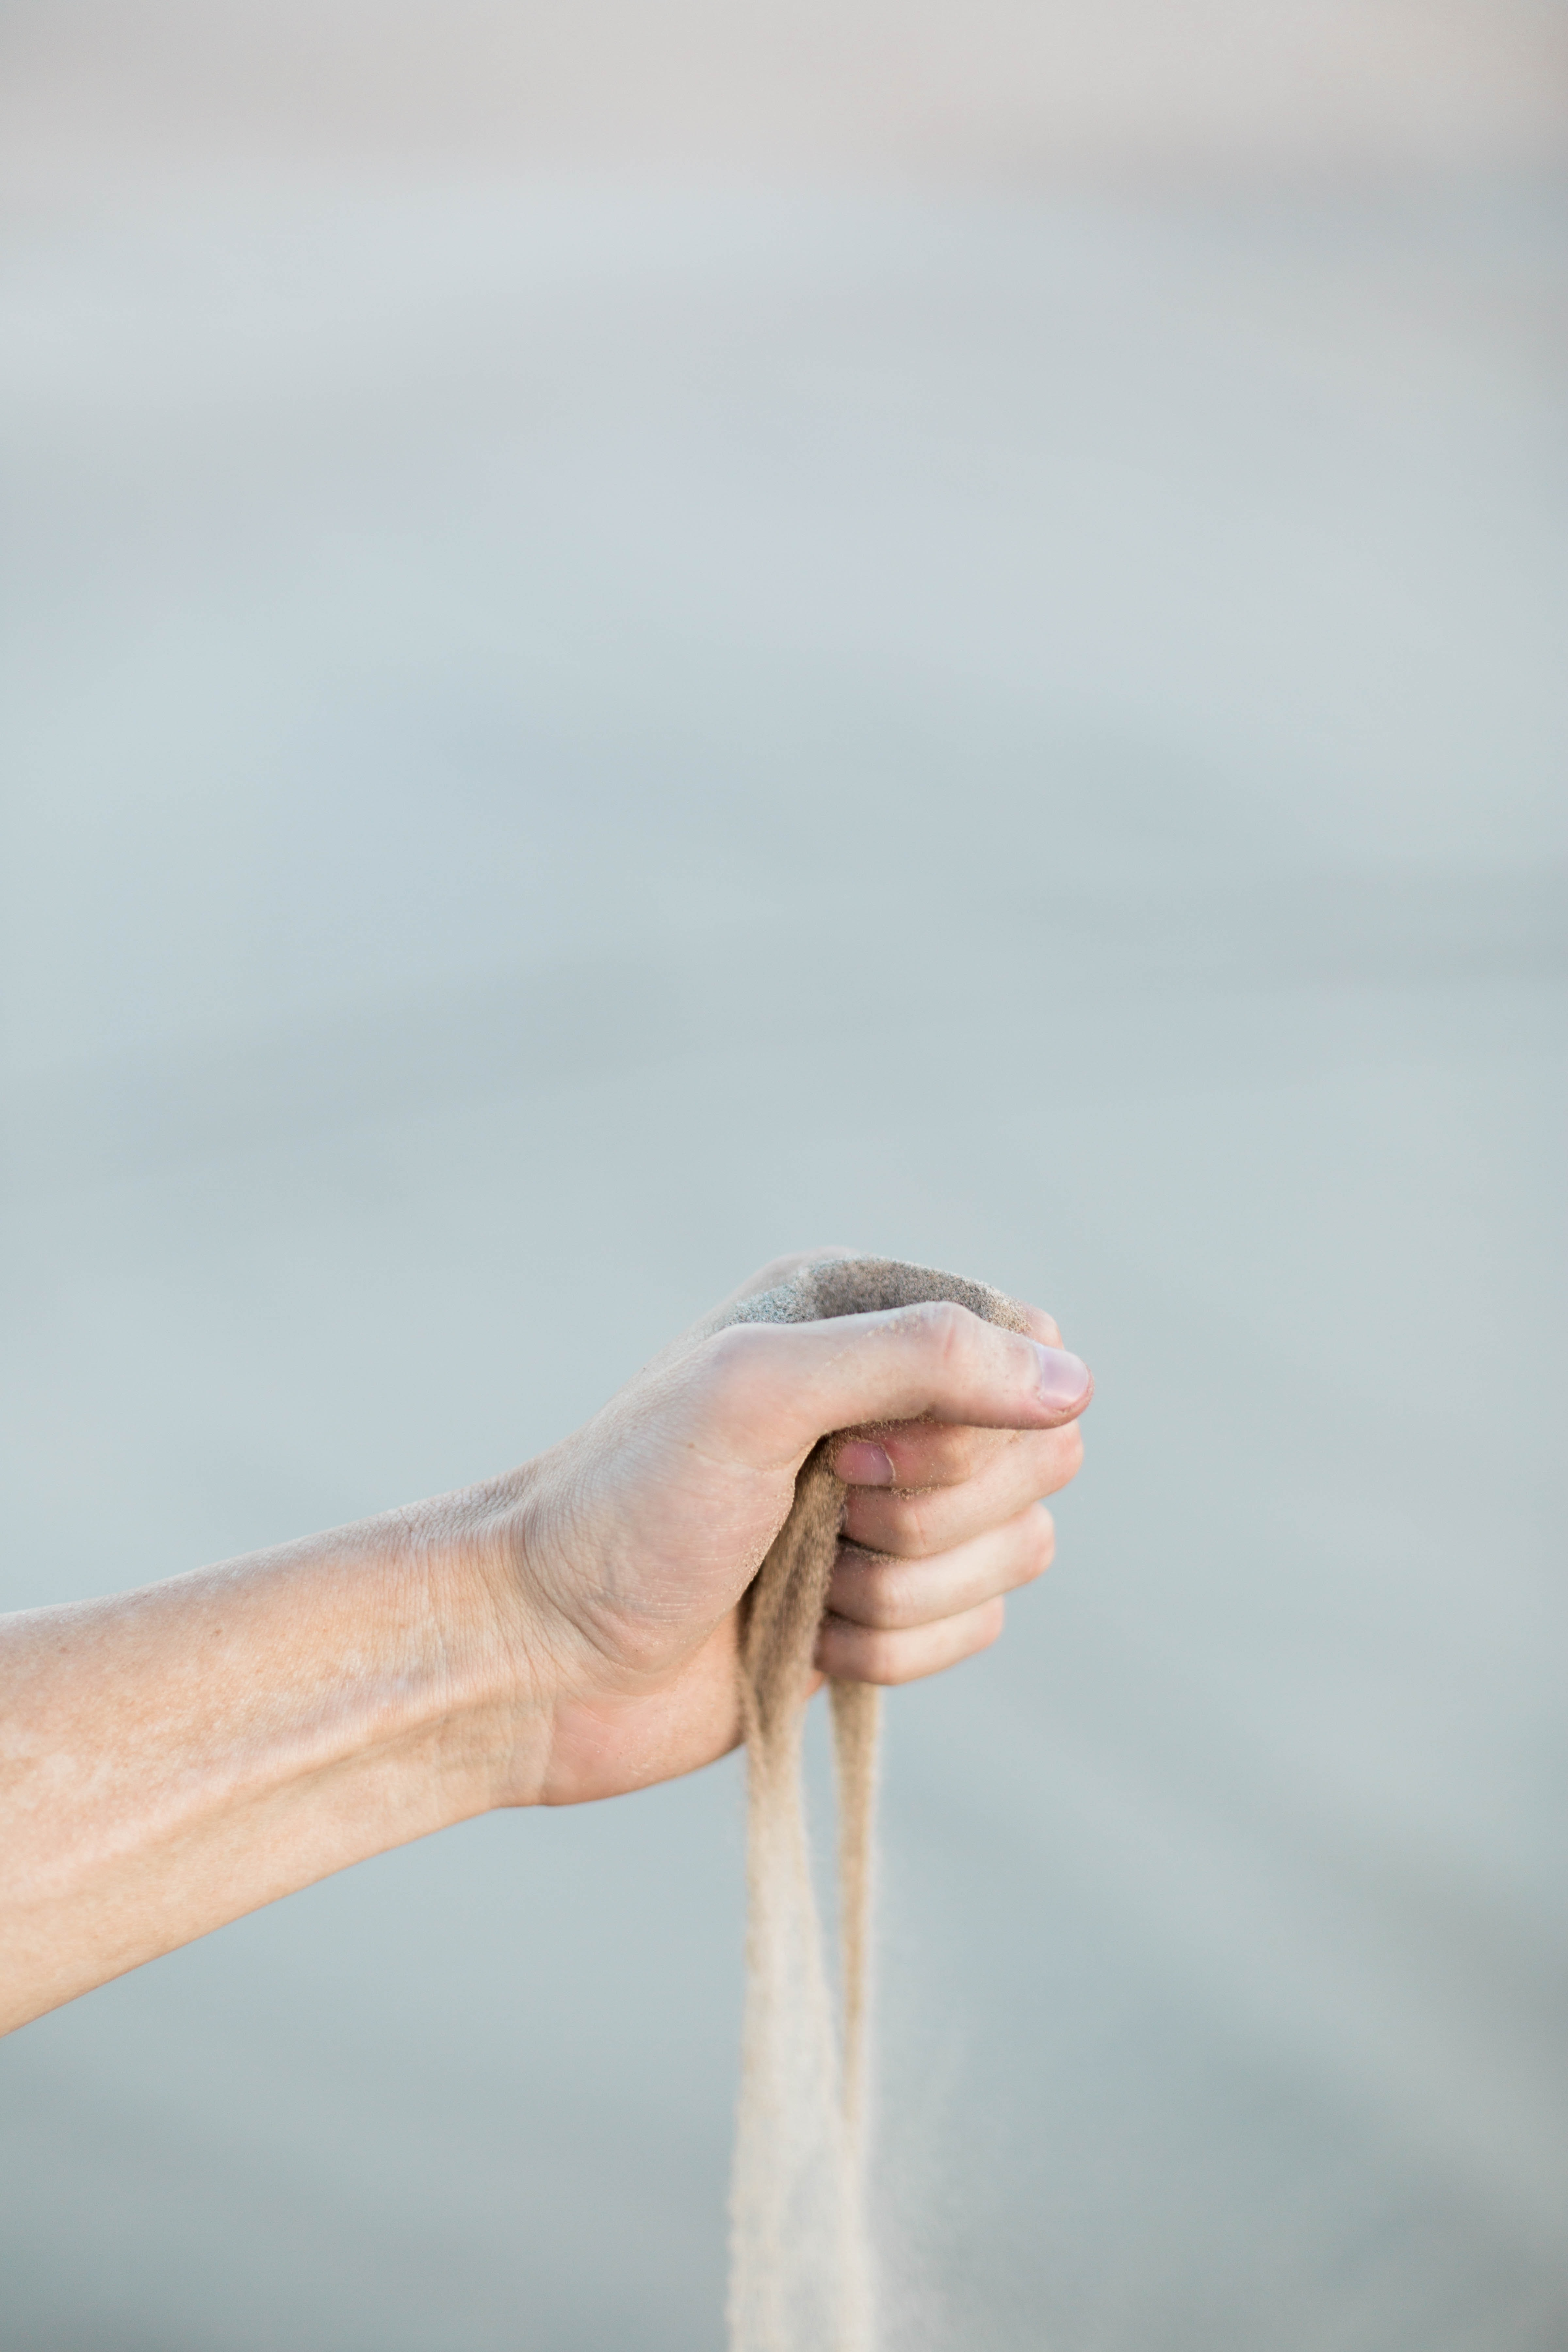 selective focus photography of person holding sand